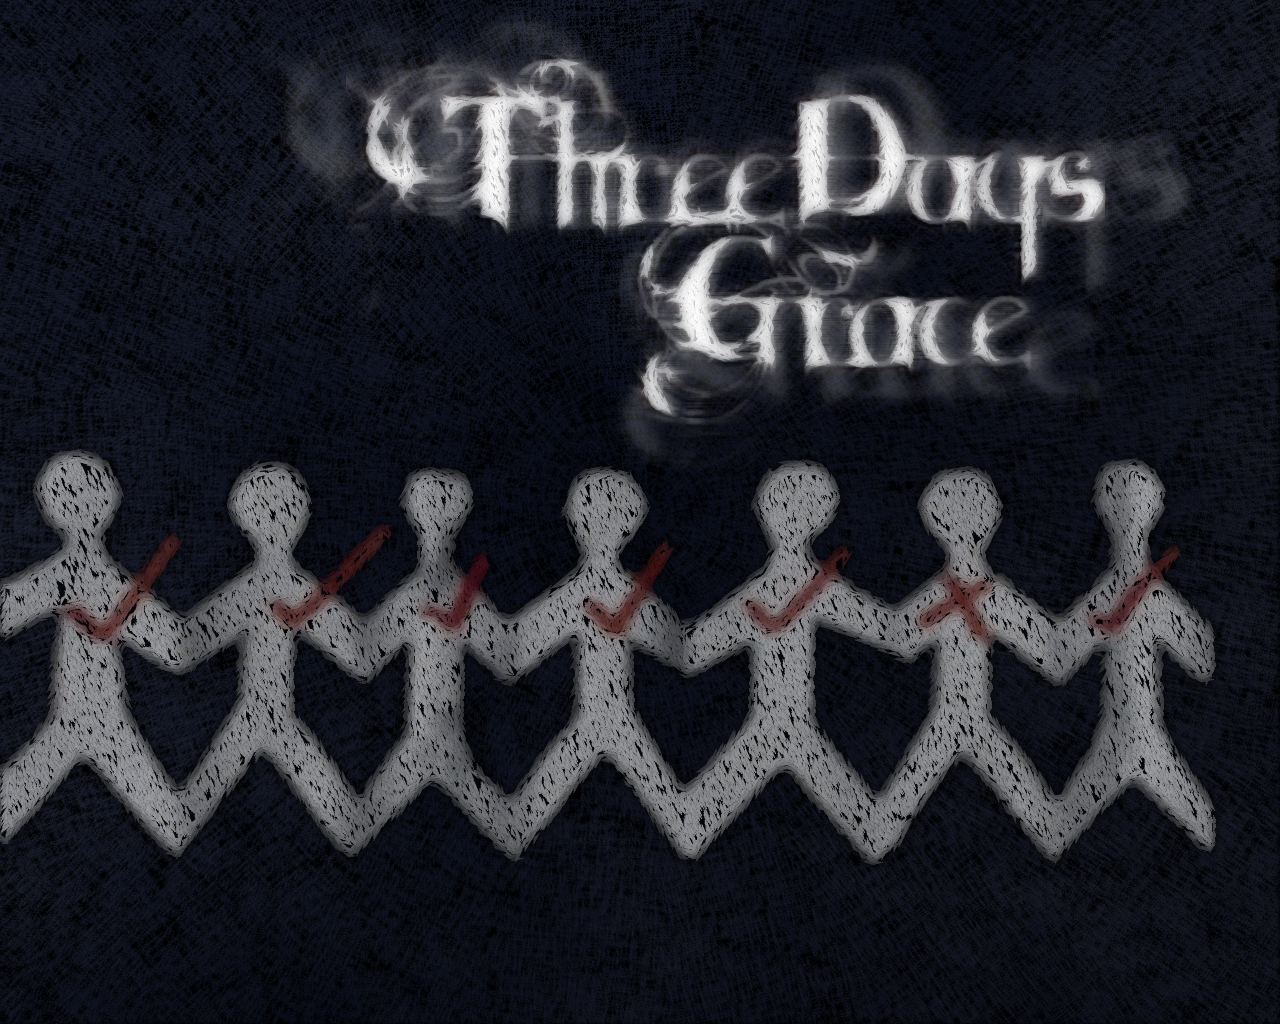 Three days grace wallpapers high quality download free - Three days grace wallpaper ...